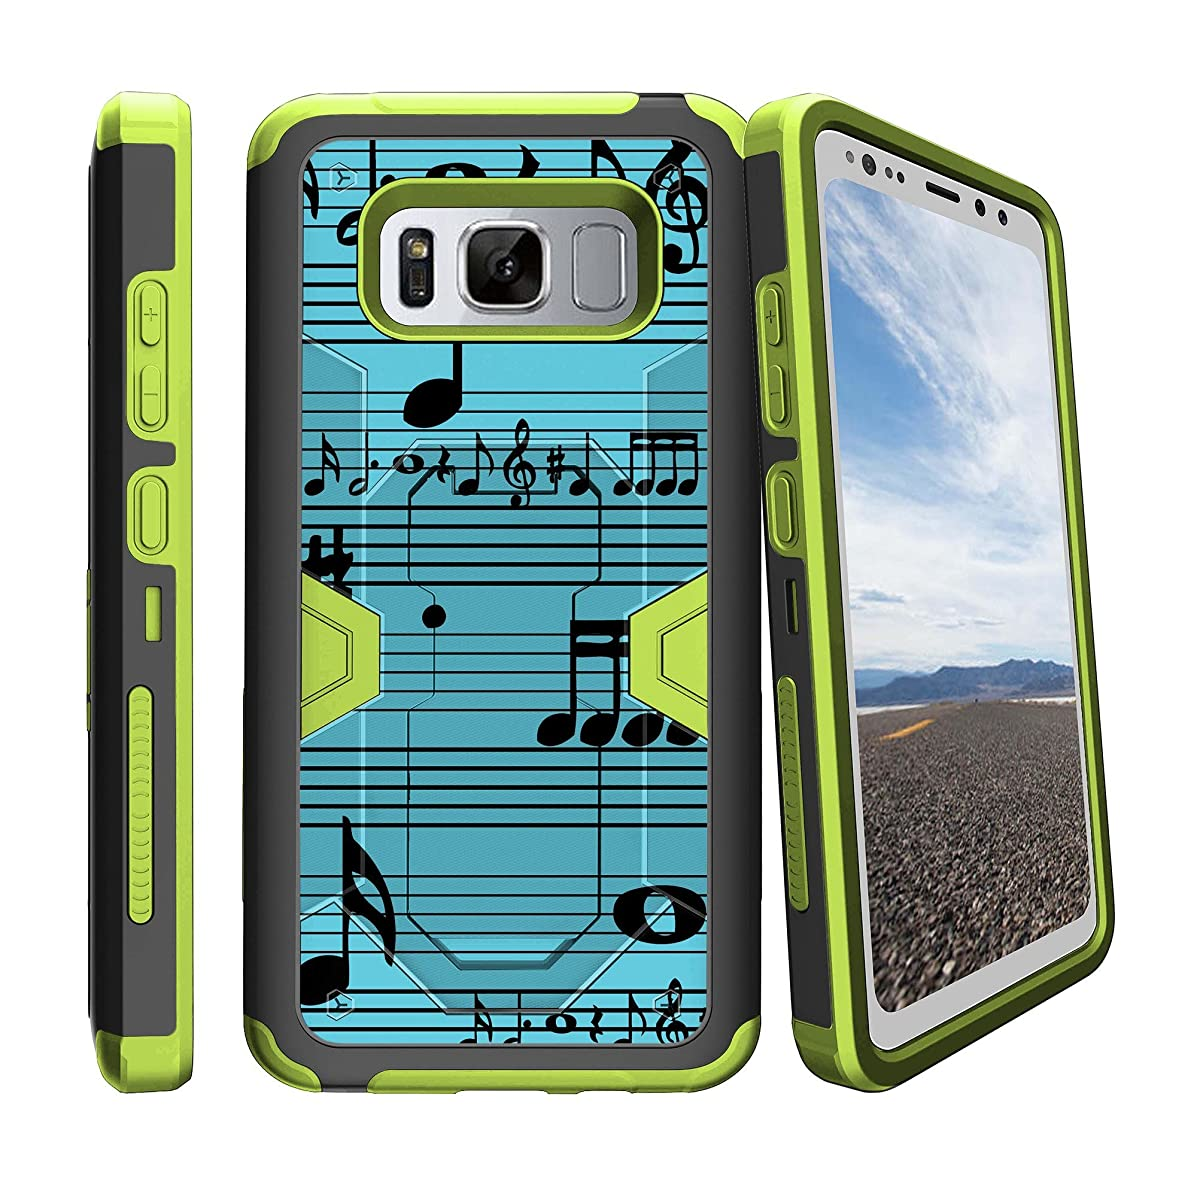 MINITURTLE Case Compatible w/Samsung Galaxy S8 Active SMG892 Green Galaxy S8 Active Case w/Holster & Stand Feature BlueMusical Notes